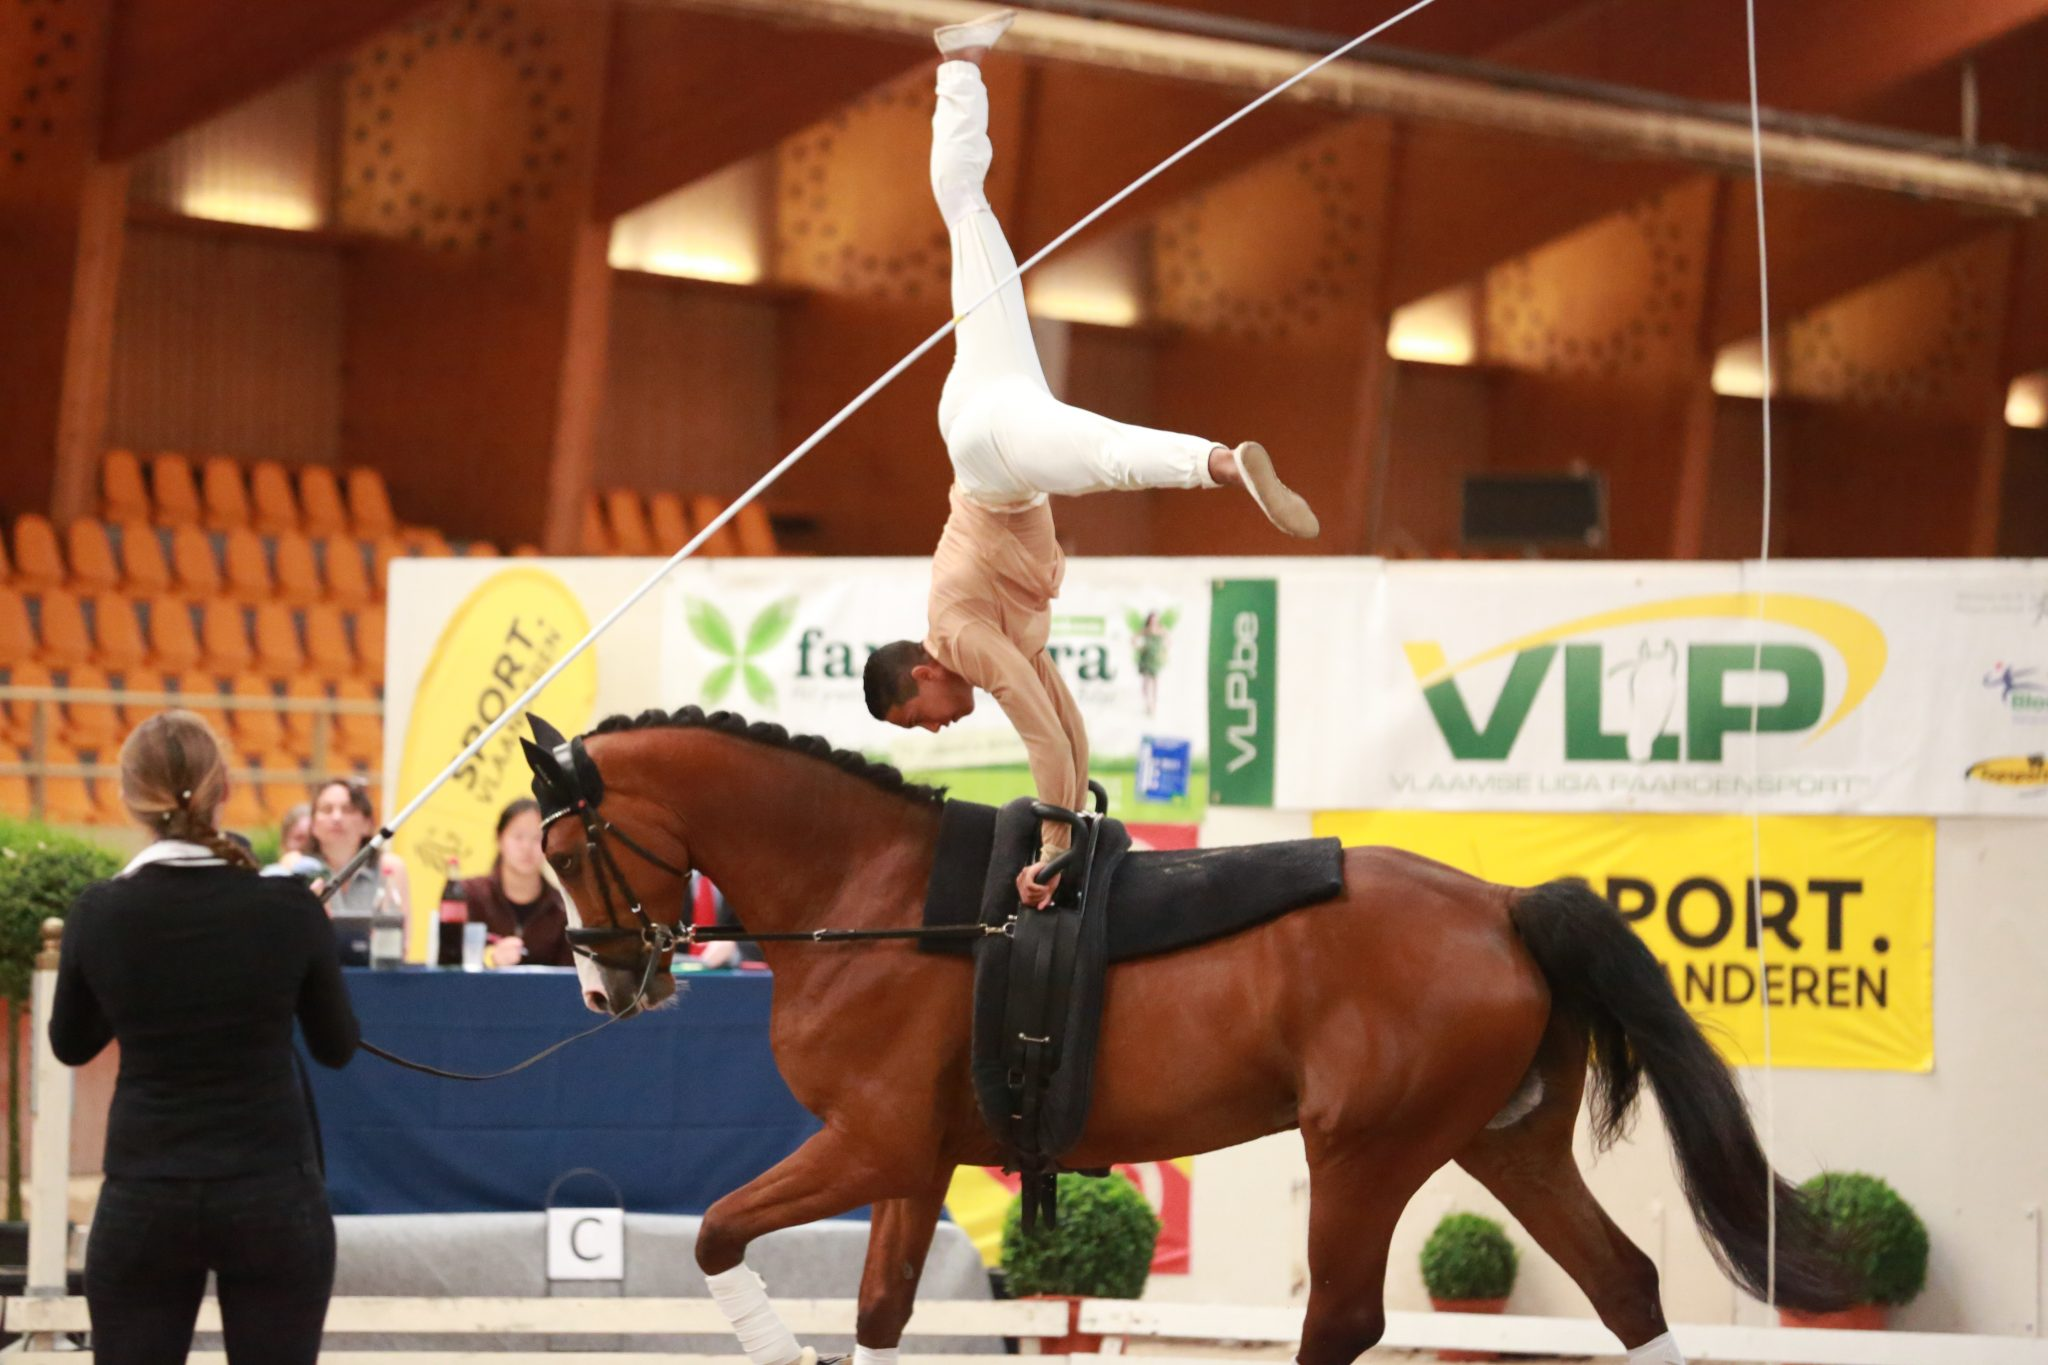 Lunging clinic Switzerland 11&12 Nov